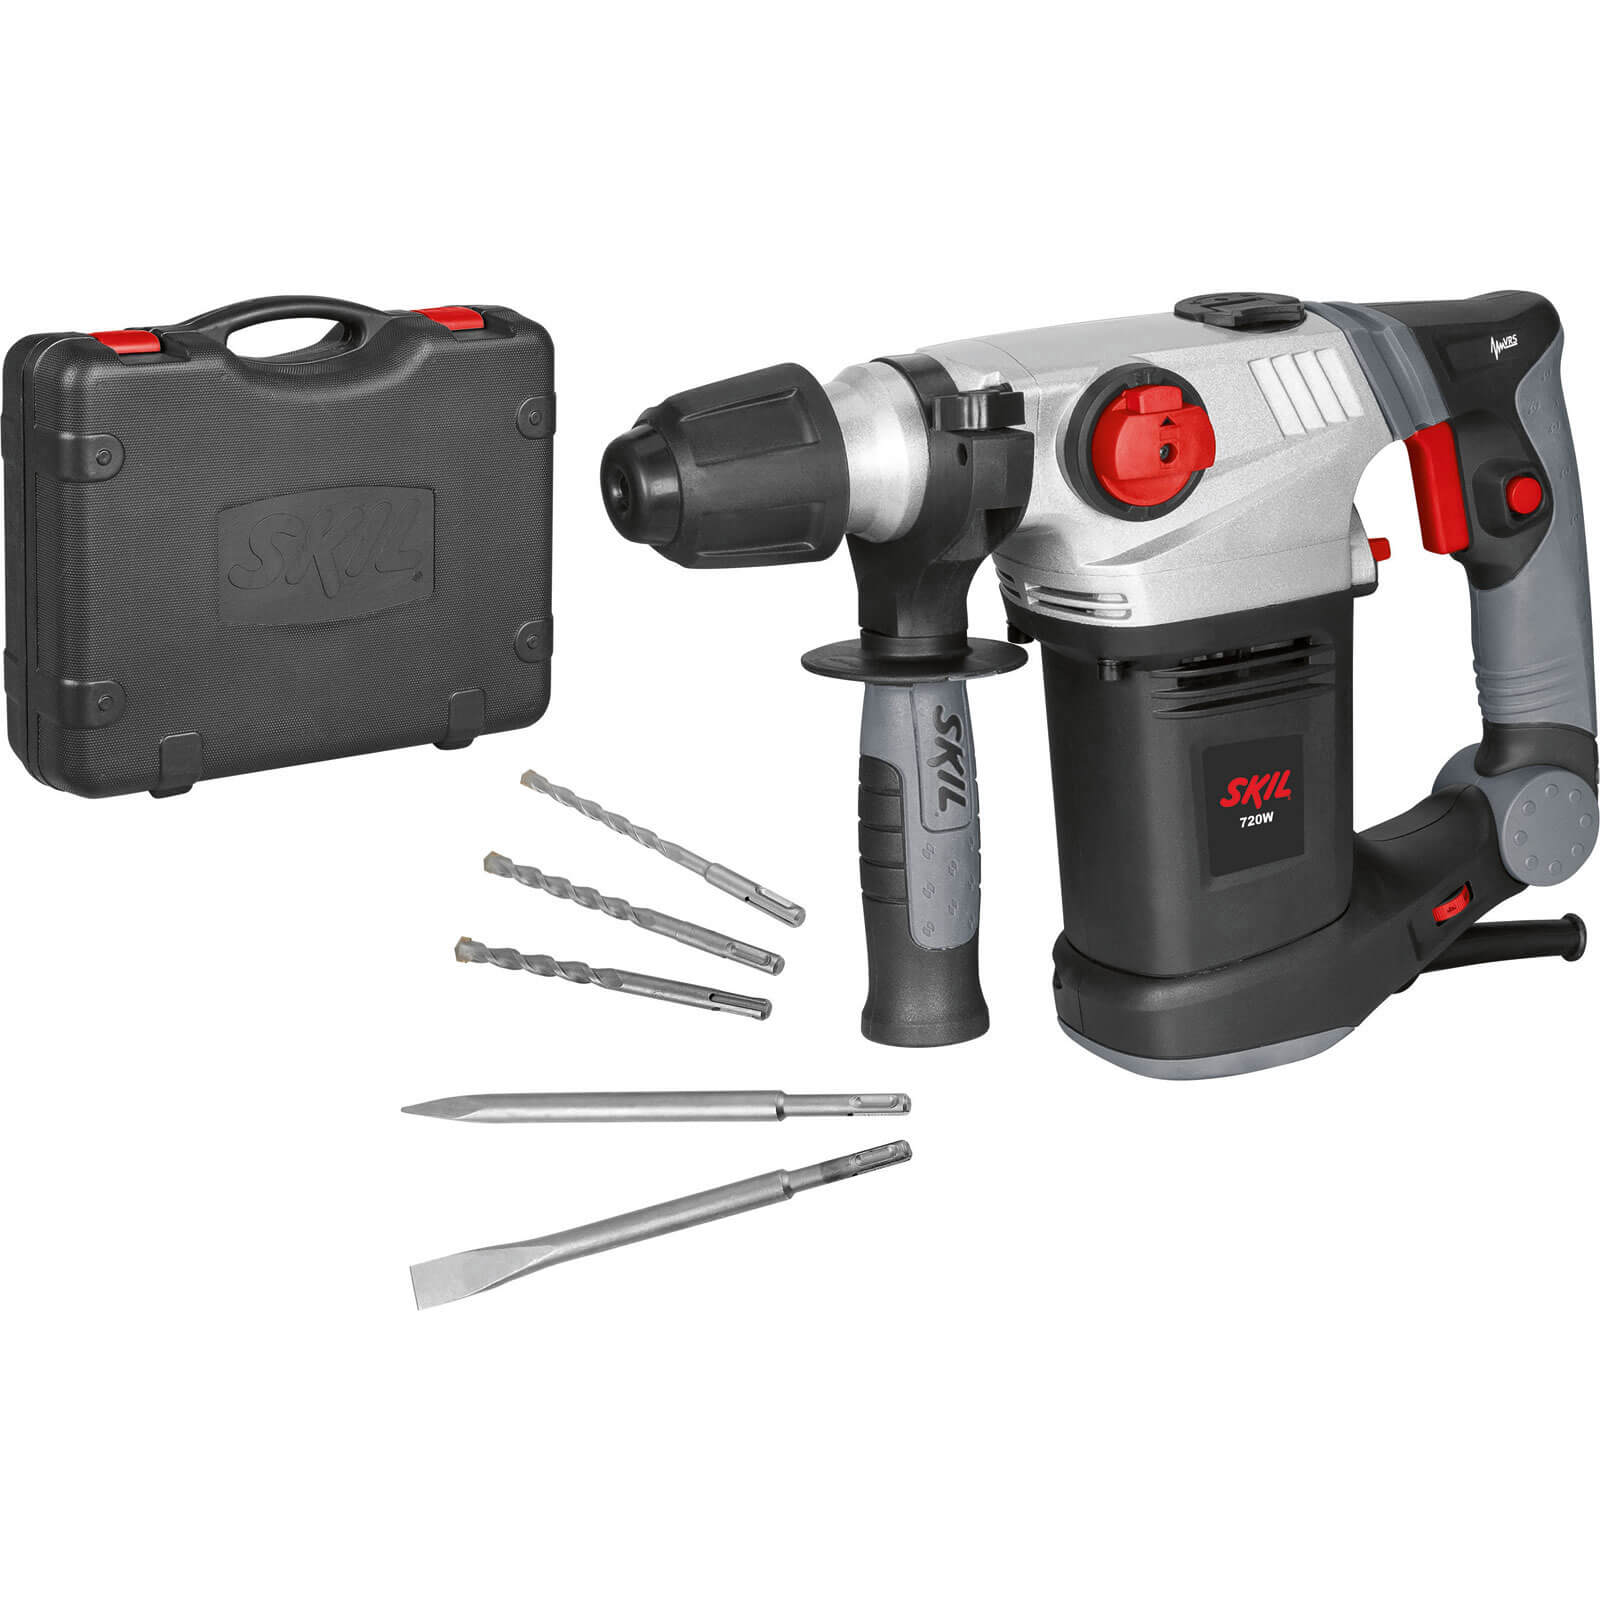 Image of Skil 1035AL SDS Plus Rotary Hammer Drill & Bit Set 240v